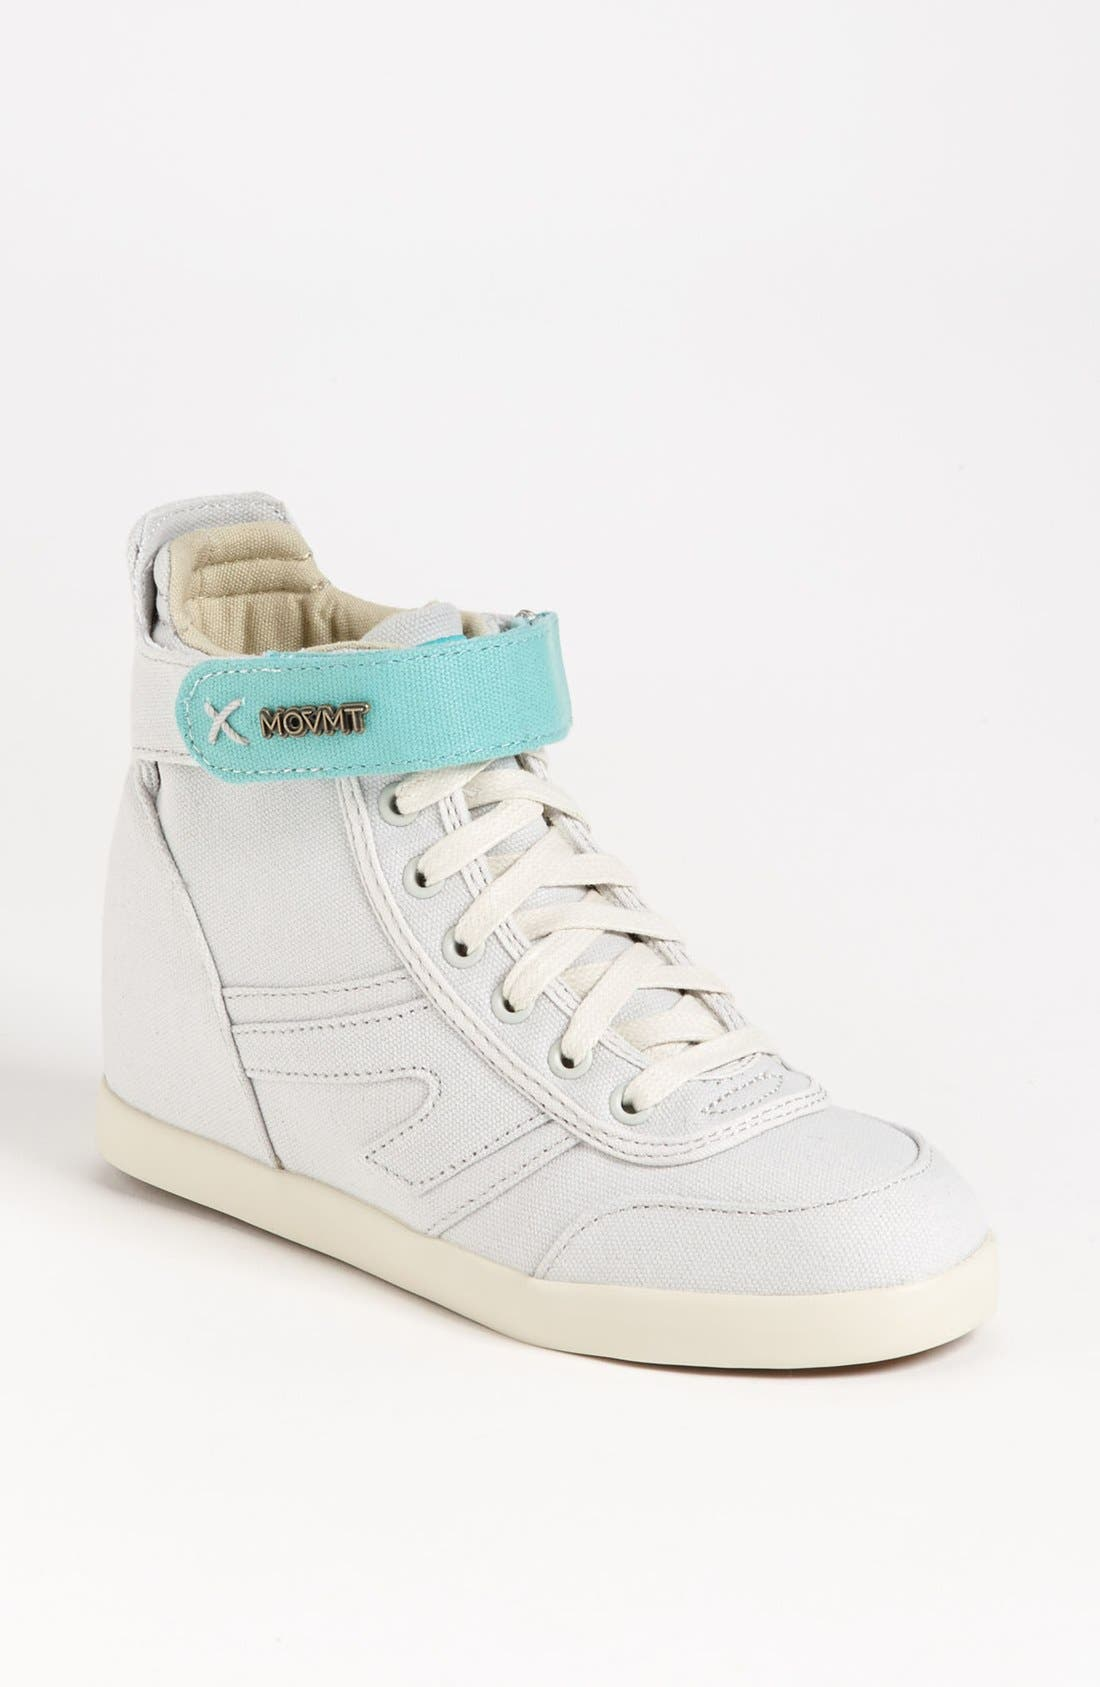 Alternate Image 1 Selected - The People's Movement 'Jade' Wedge Sneaker